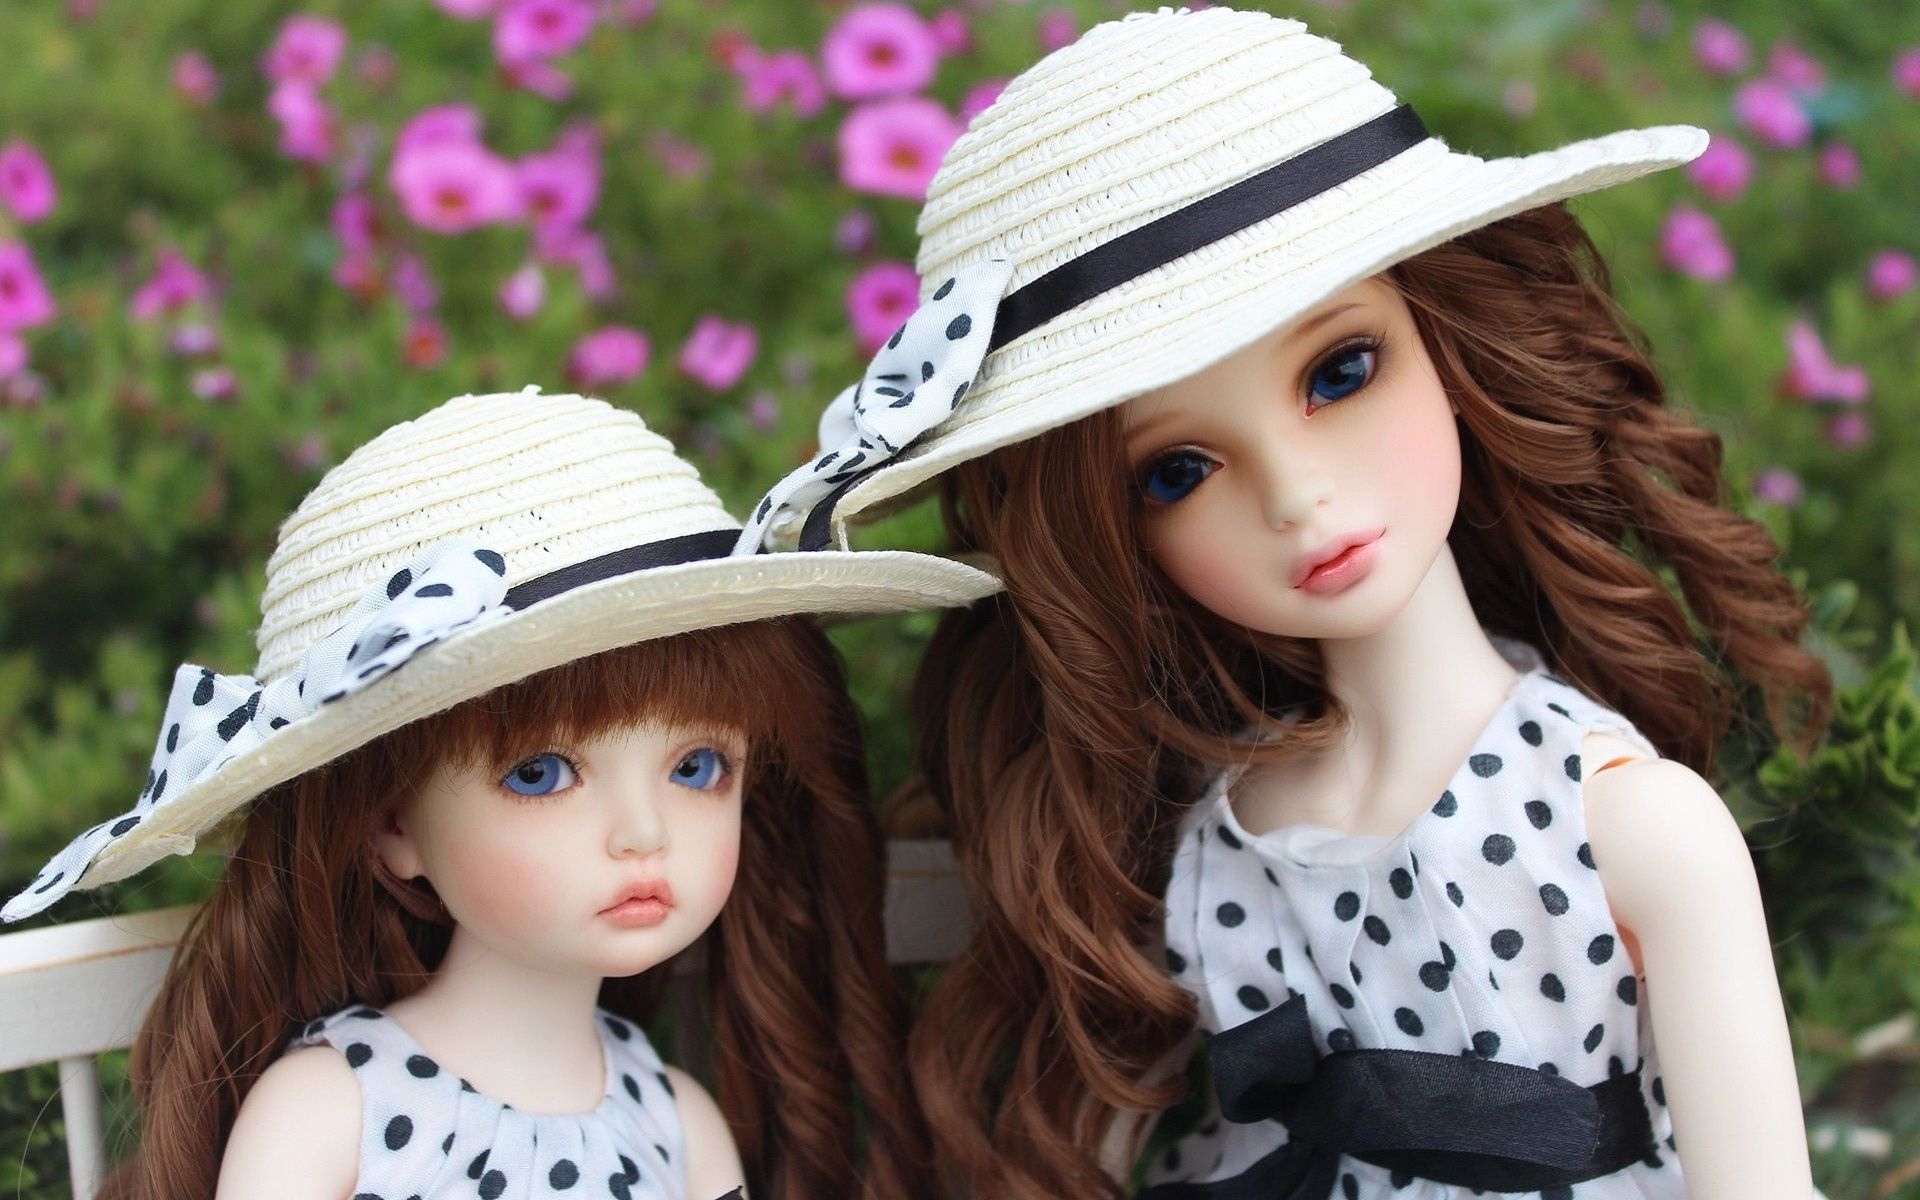 Doll Wallpaper Doll Full K Ultra Hd Quality Wallpapers Archive Doll Images Hd Whatsapp Status For Girls Hd Cool Wallpapers